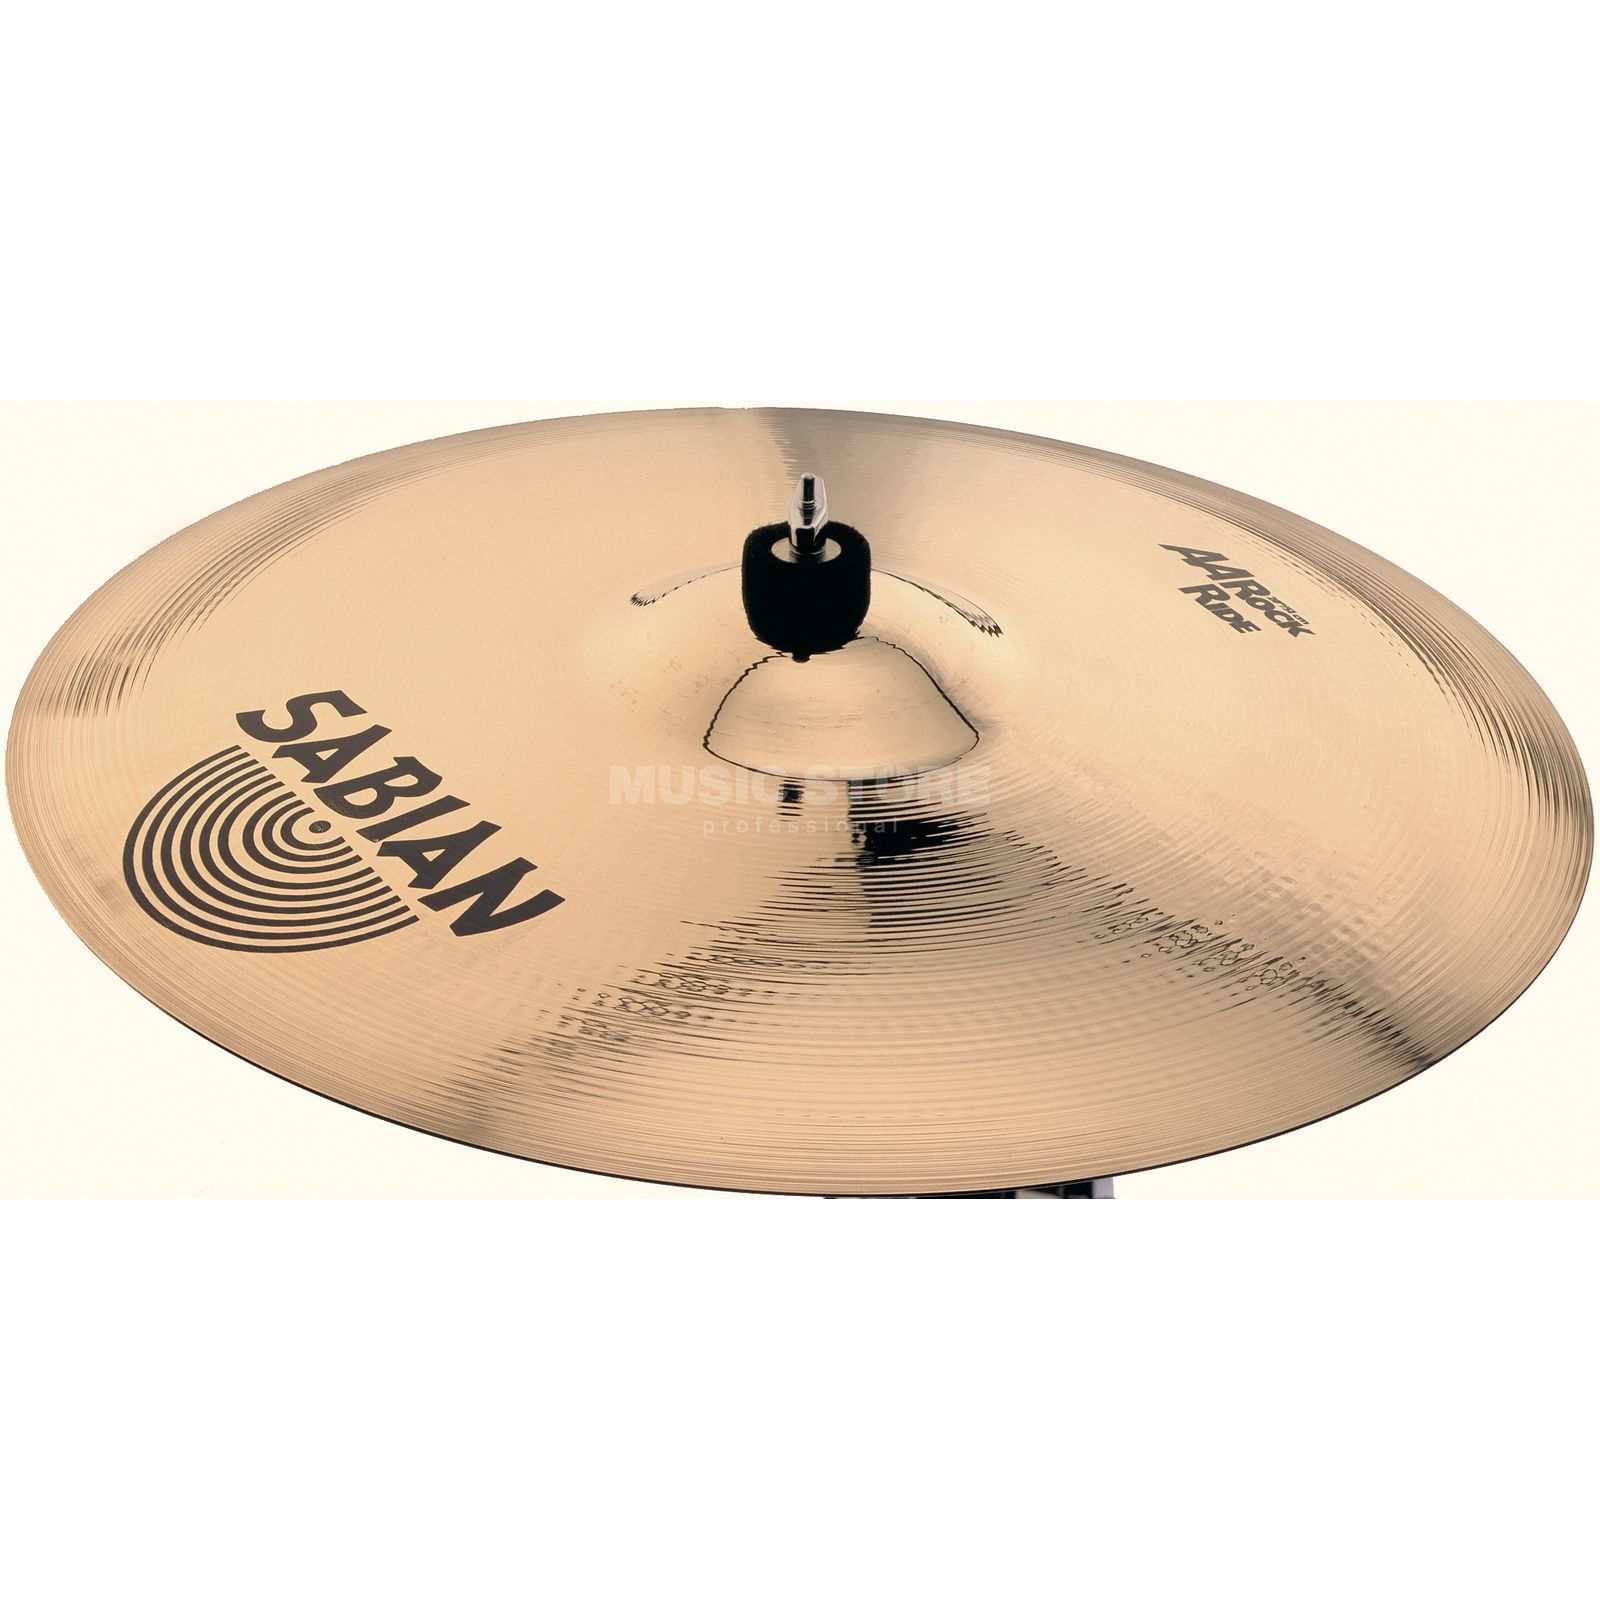 "Sabian AA Rock Ride 21"" Brilliant Finish Imagem do produto"